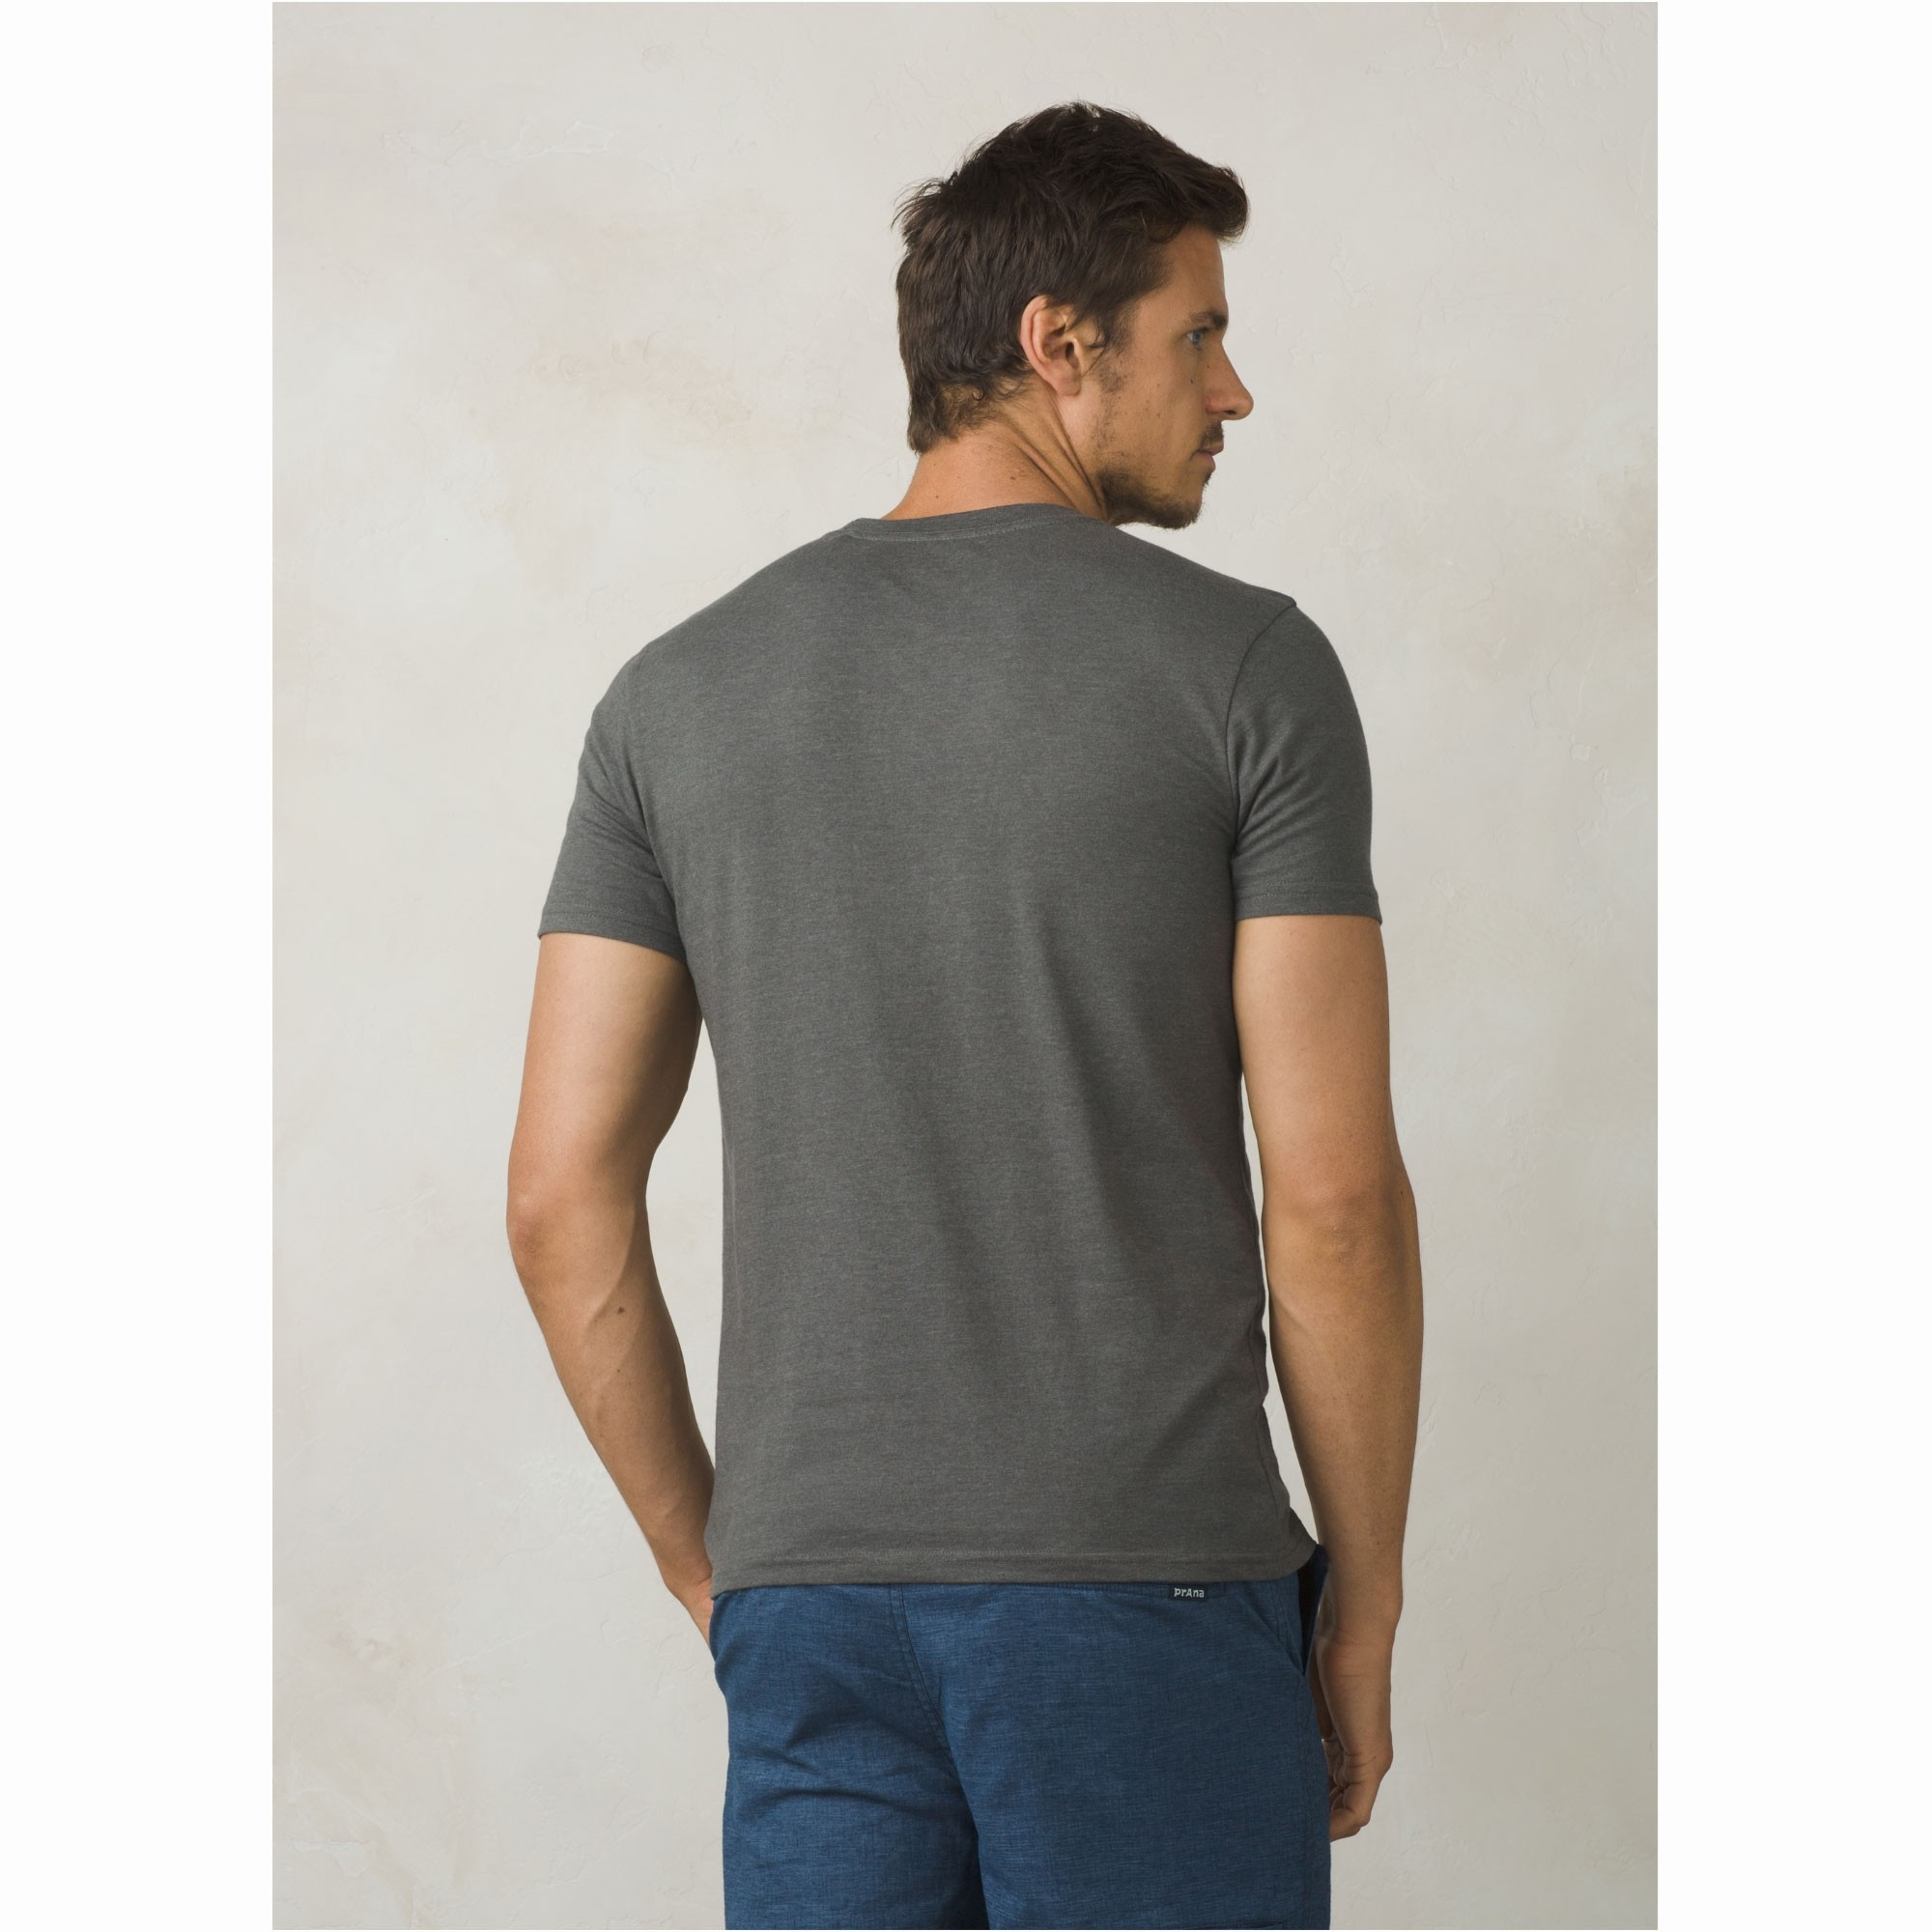 Prana Ezer T-Shirt - Charcoal Heather